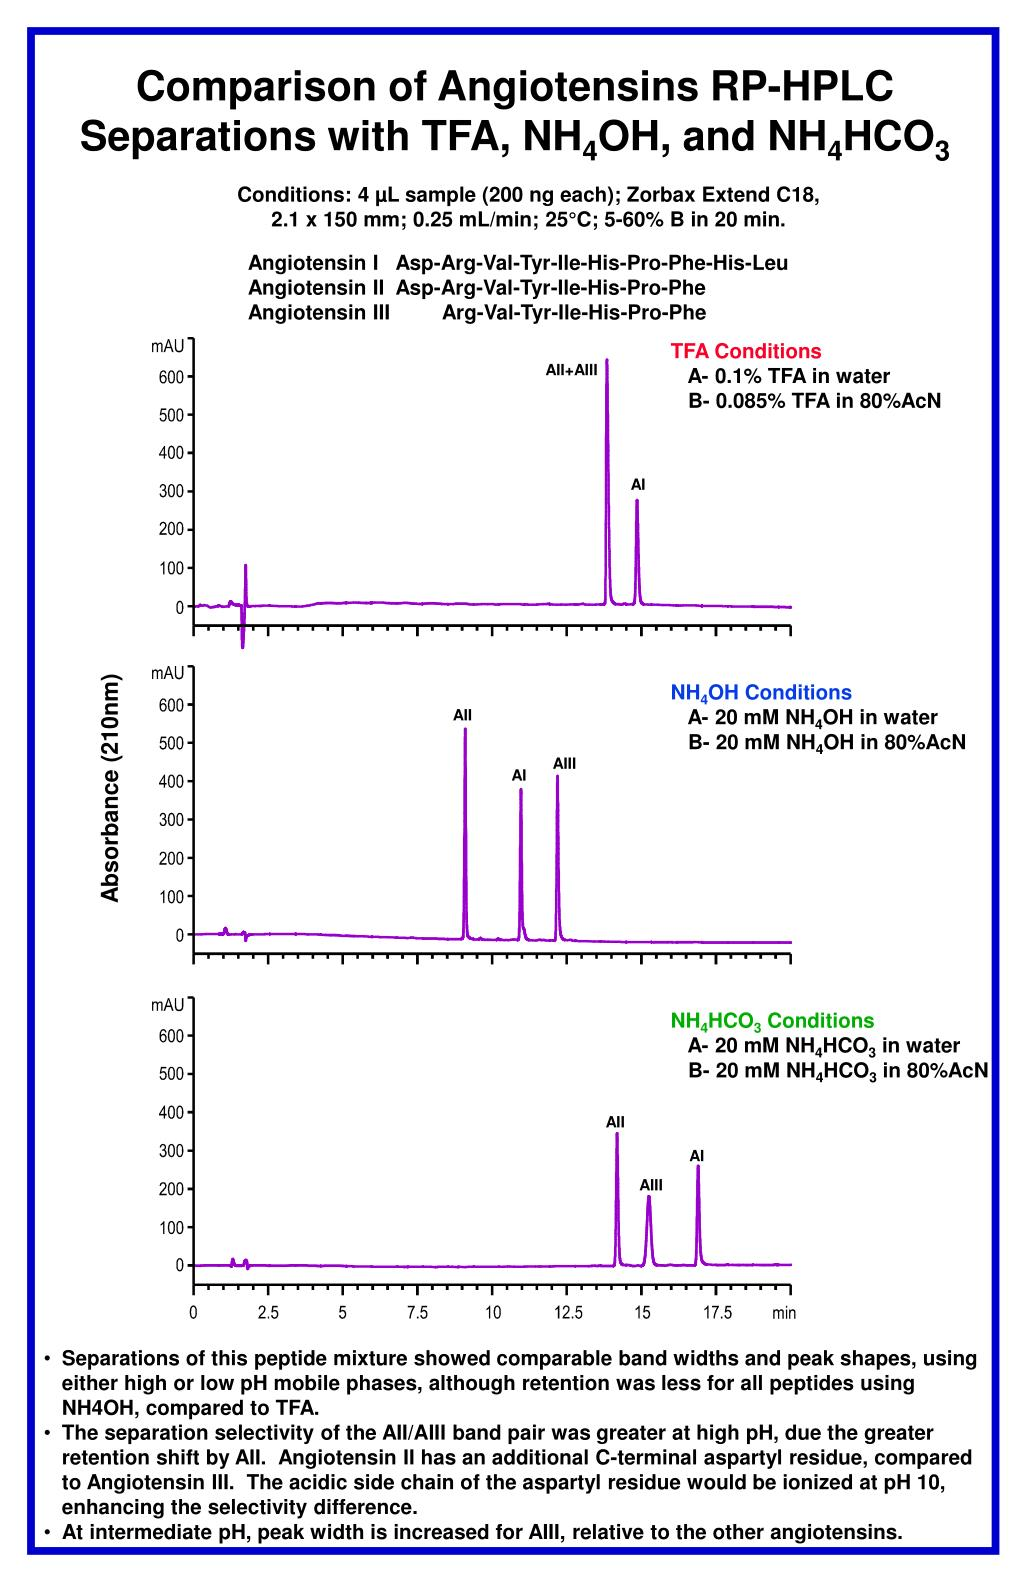 Comparison of Angiotensins RP-HPLC Separations with TFA, NH